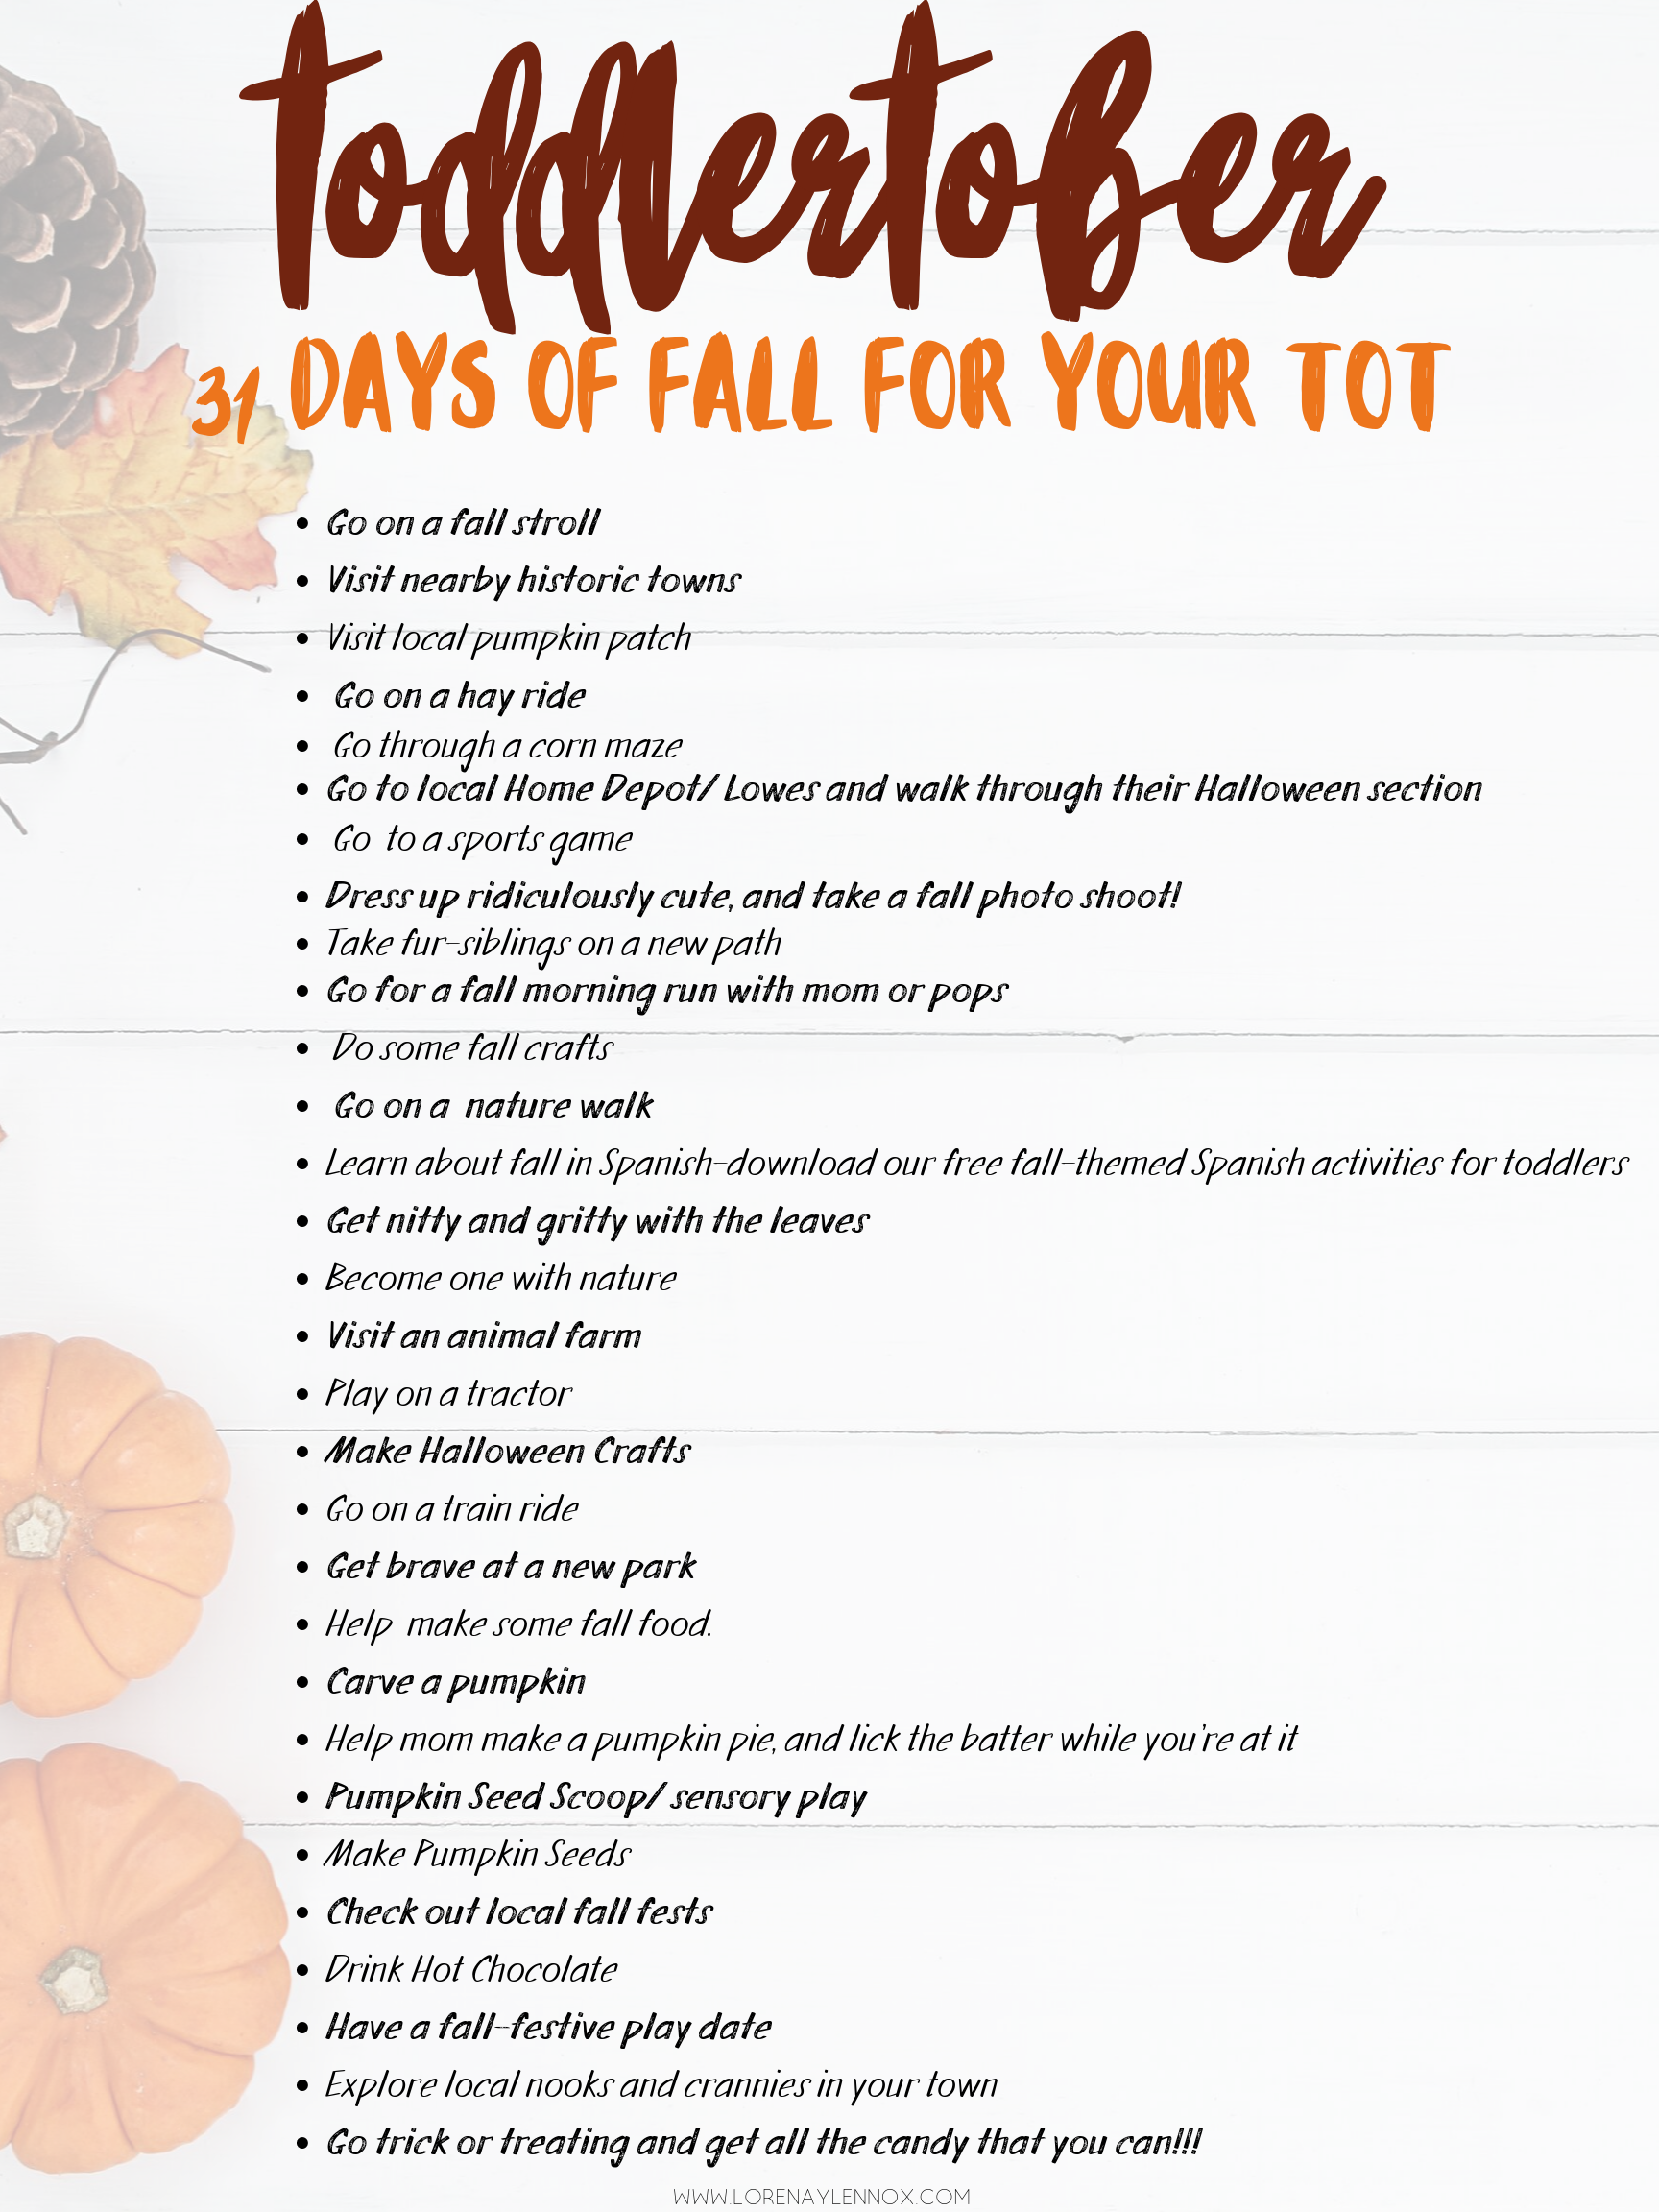 Toddlertober- 31 days of fall for your tot.